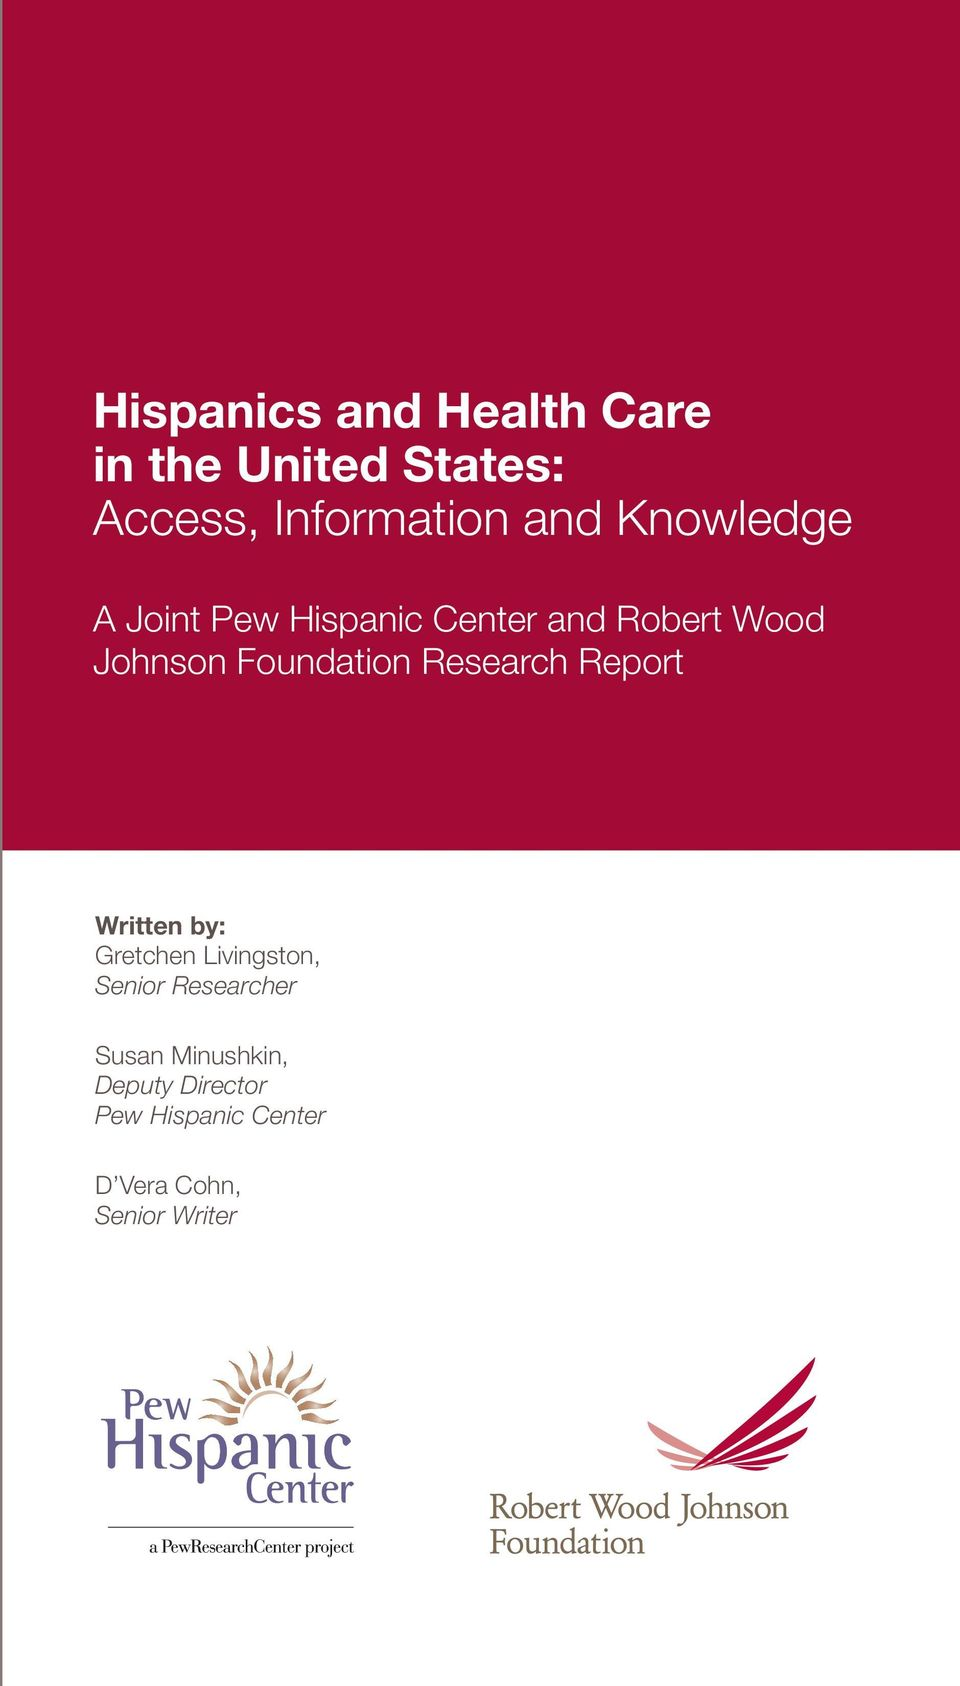 Research Report Written by: Gretchen Livingston, Senior Researcher Susan